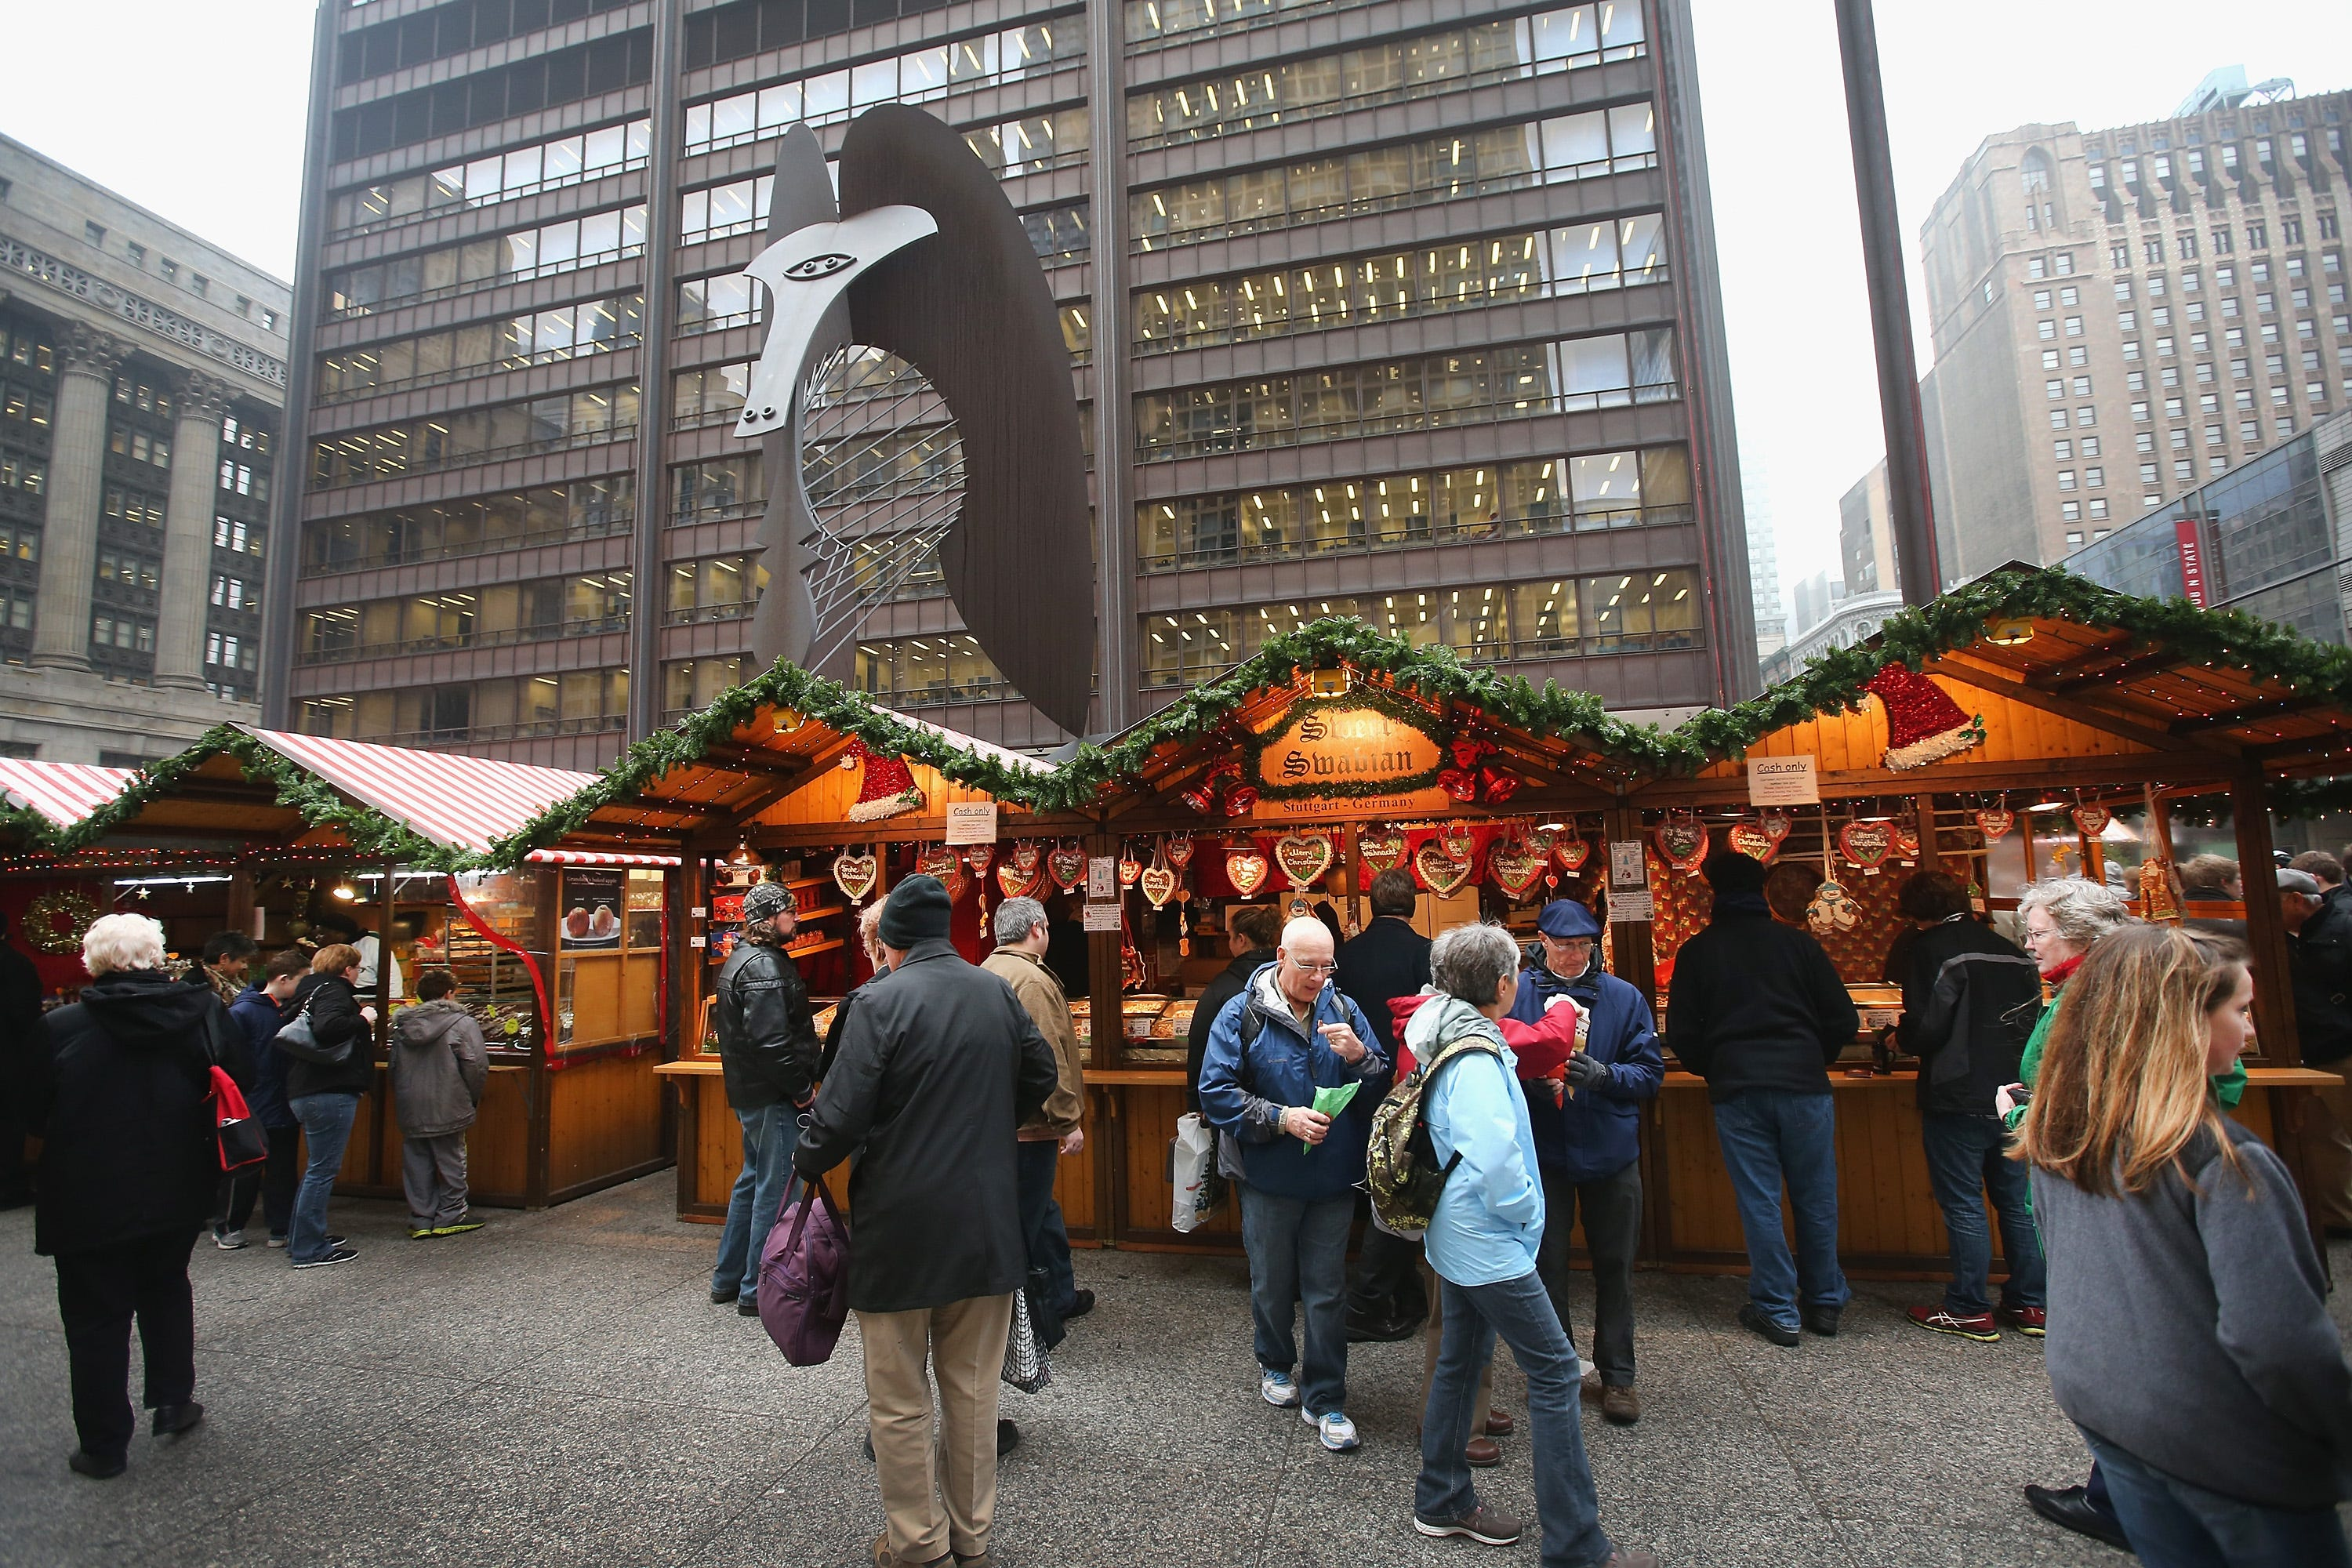 A Guide To The 2019 Christkindlmarket